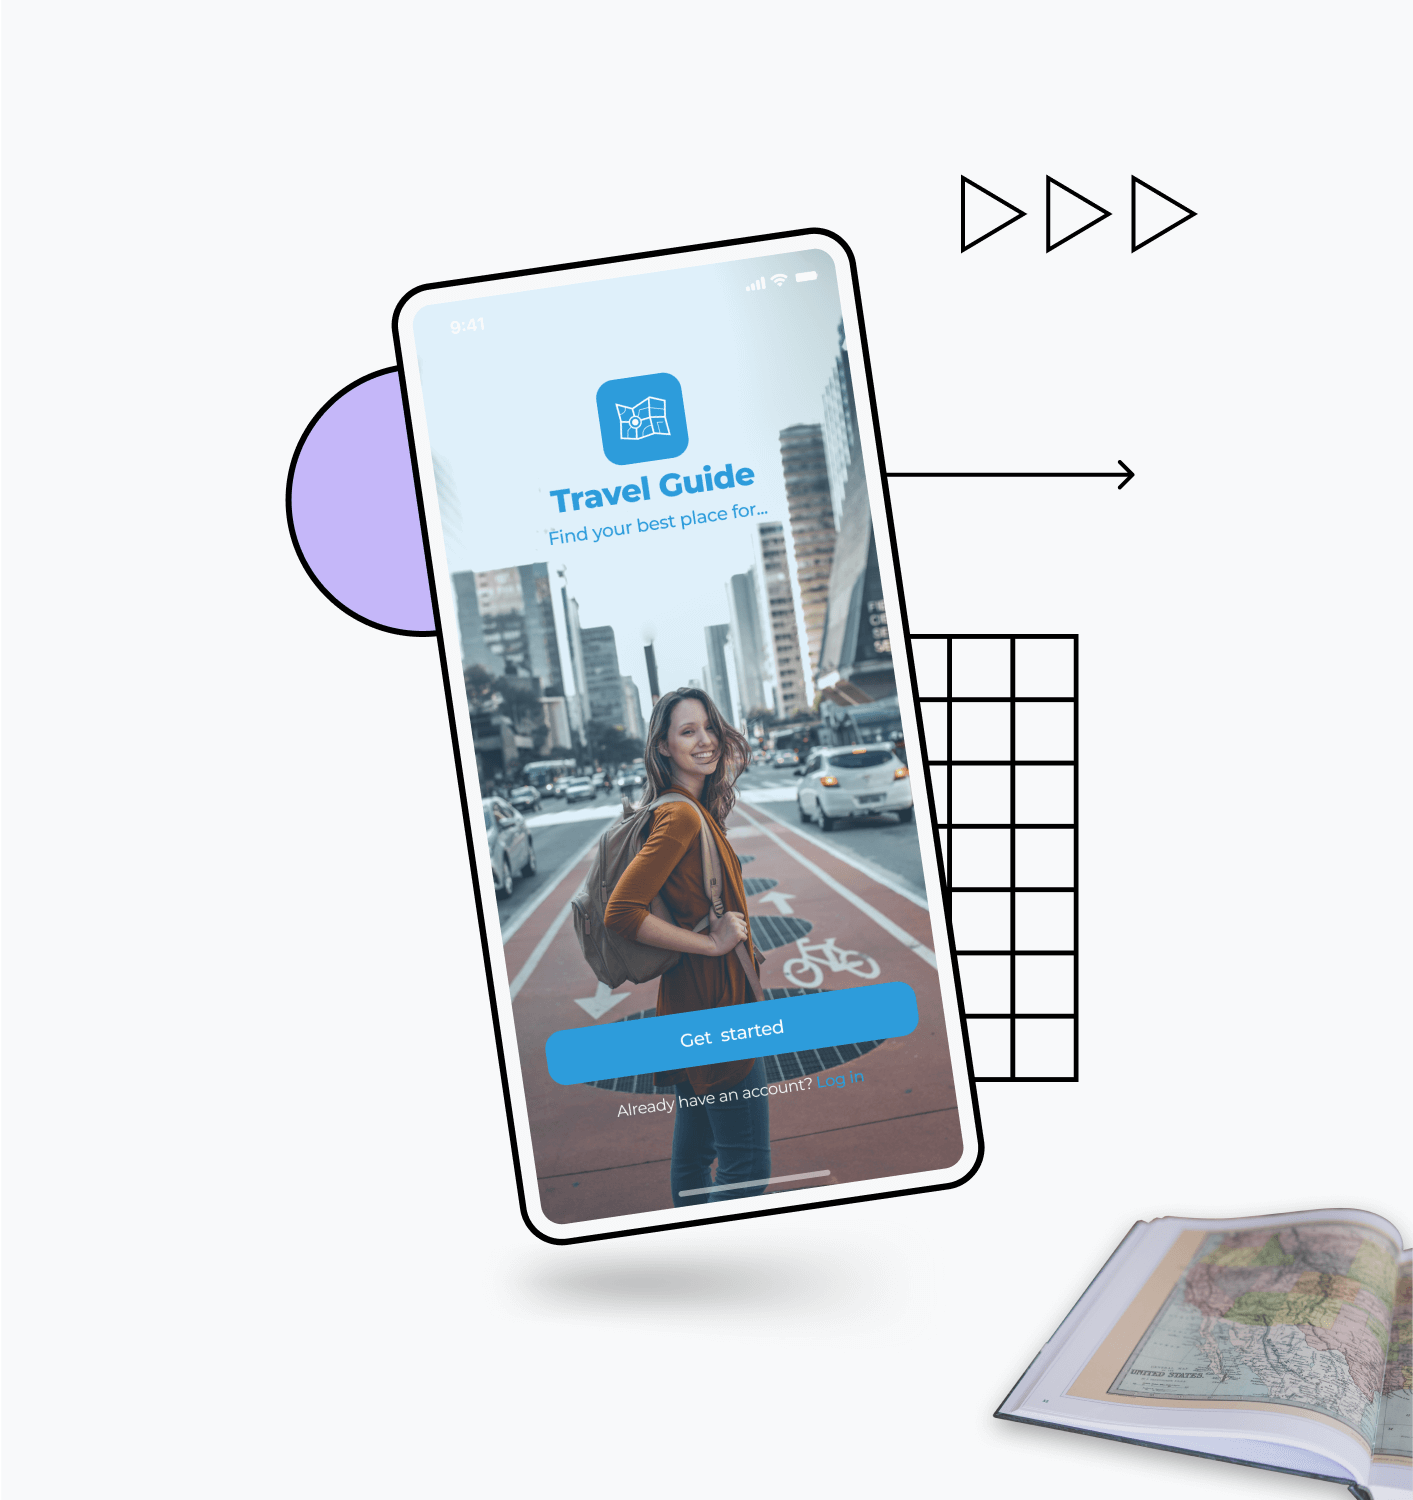 Build an itinerary app